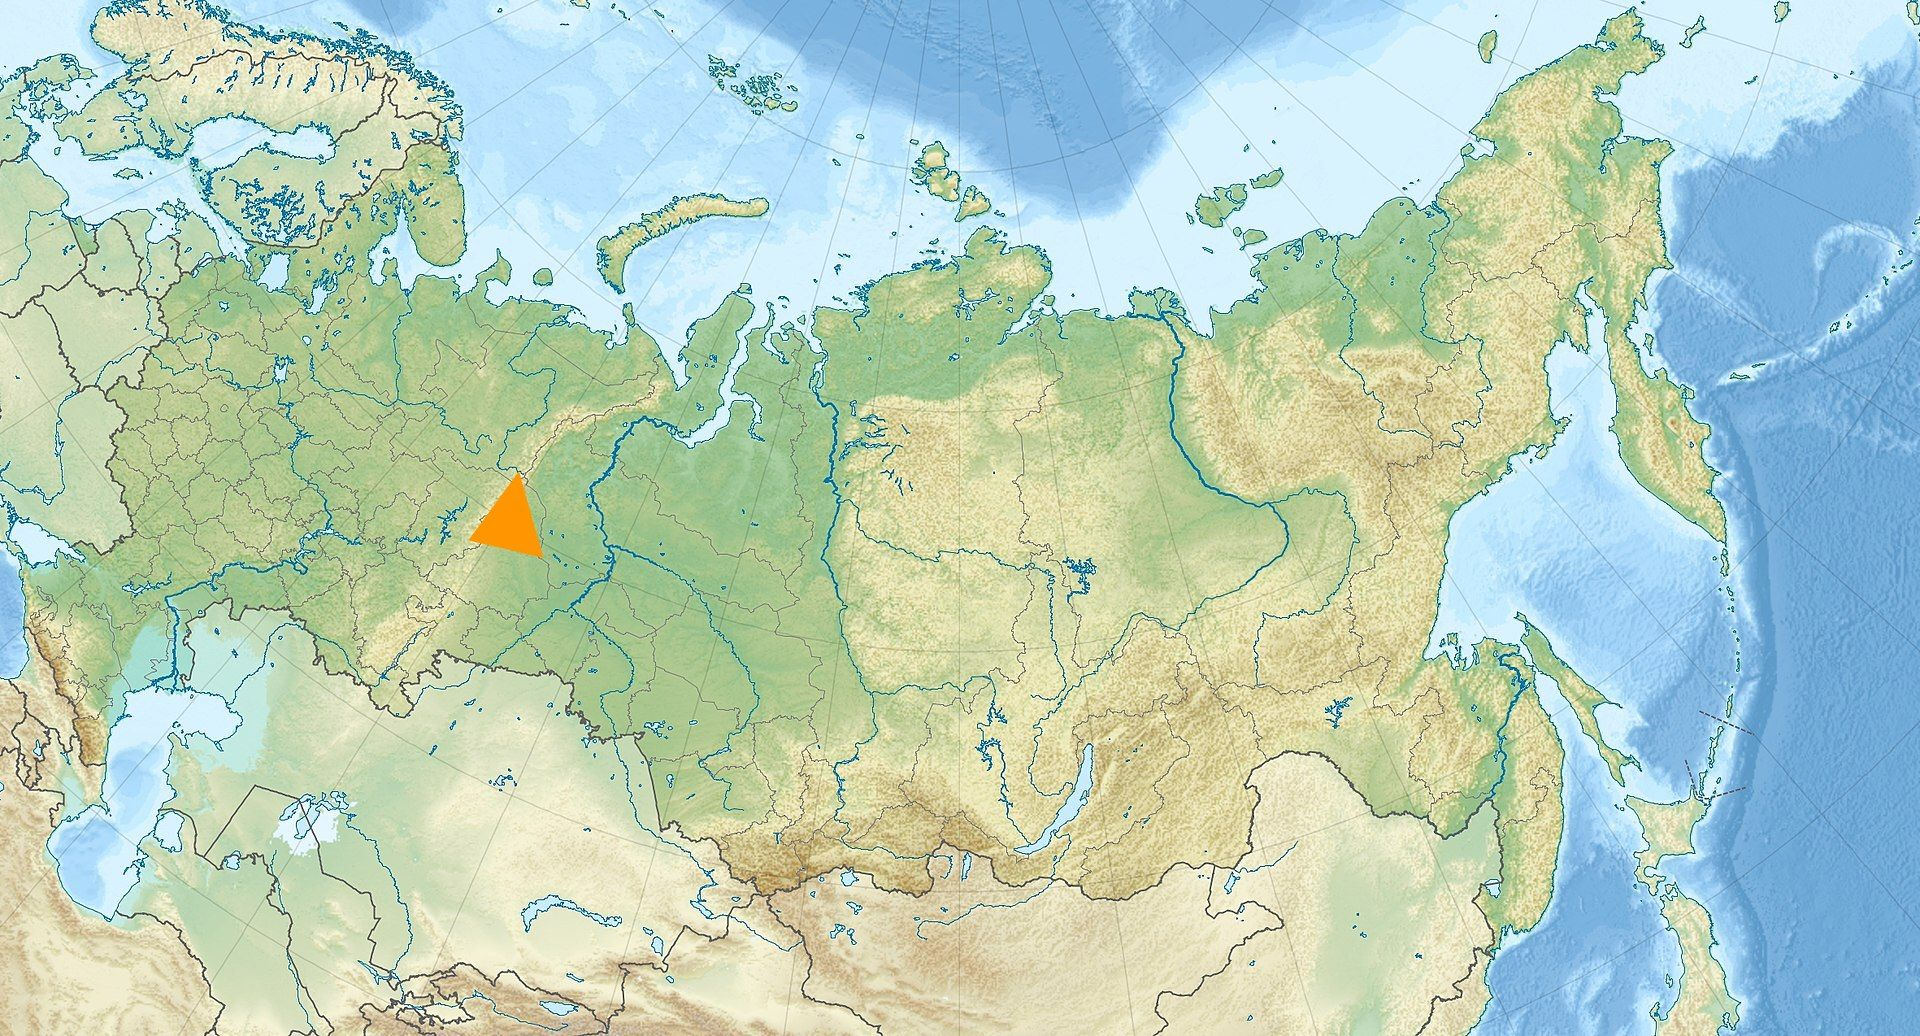 Russia Map Airports%0A Ural Mountains  the Urals  are a mountain range that runs approximately  from north to south through western Russia  from the coast of the Arctic  Ocean to